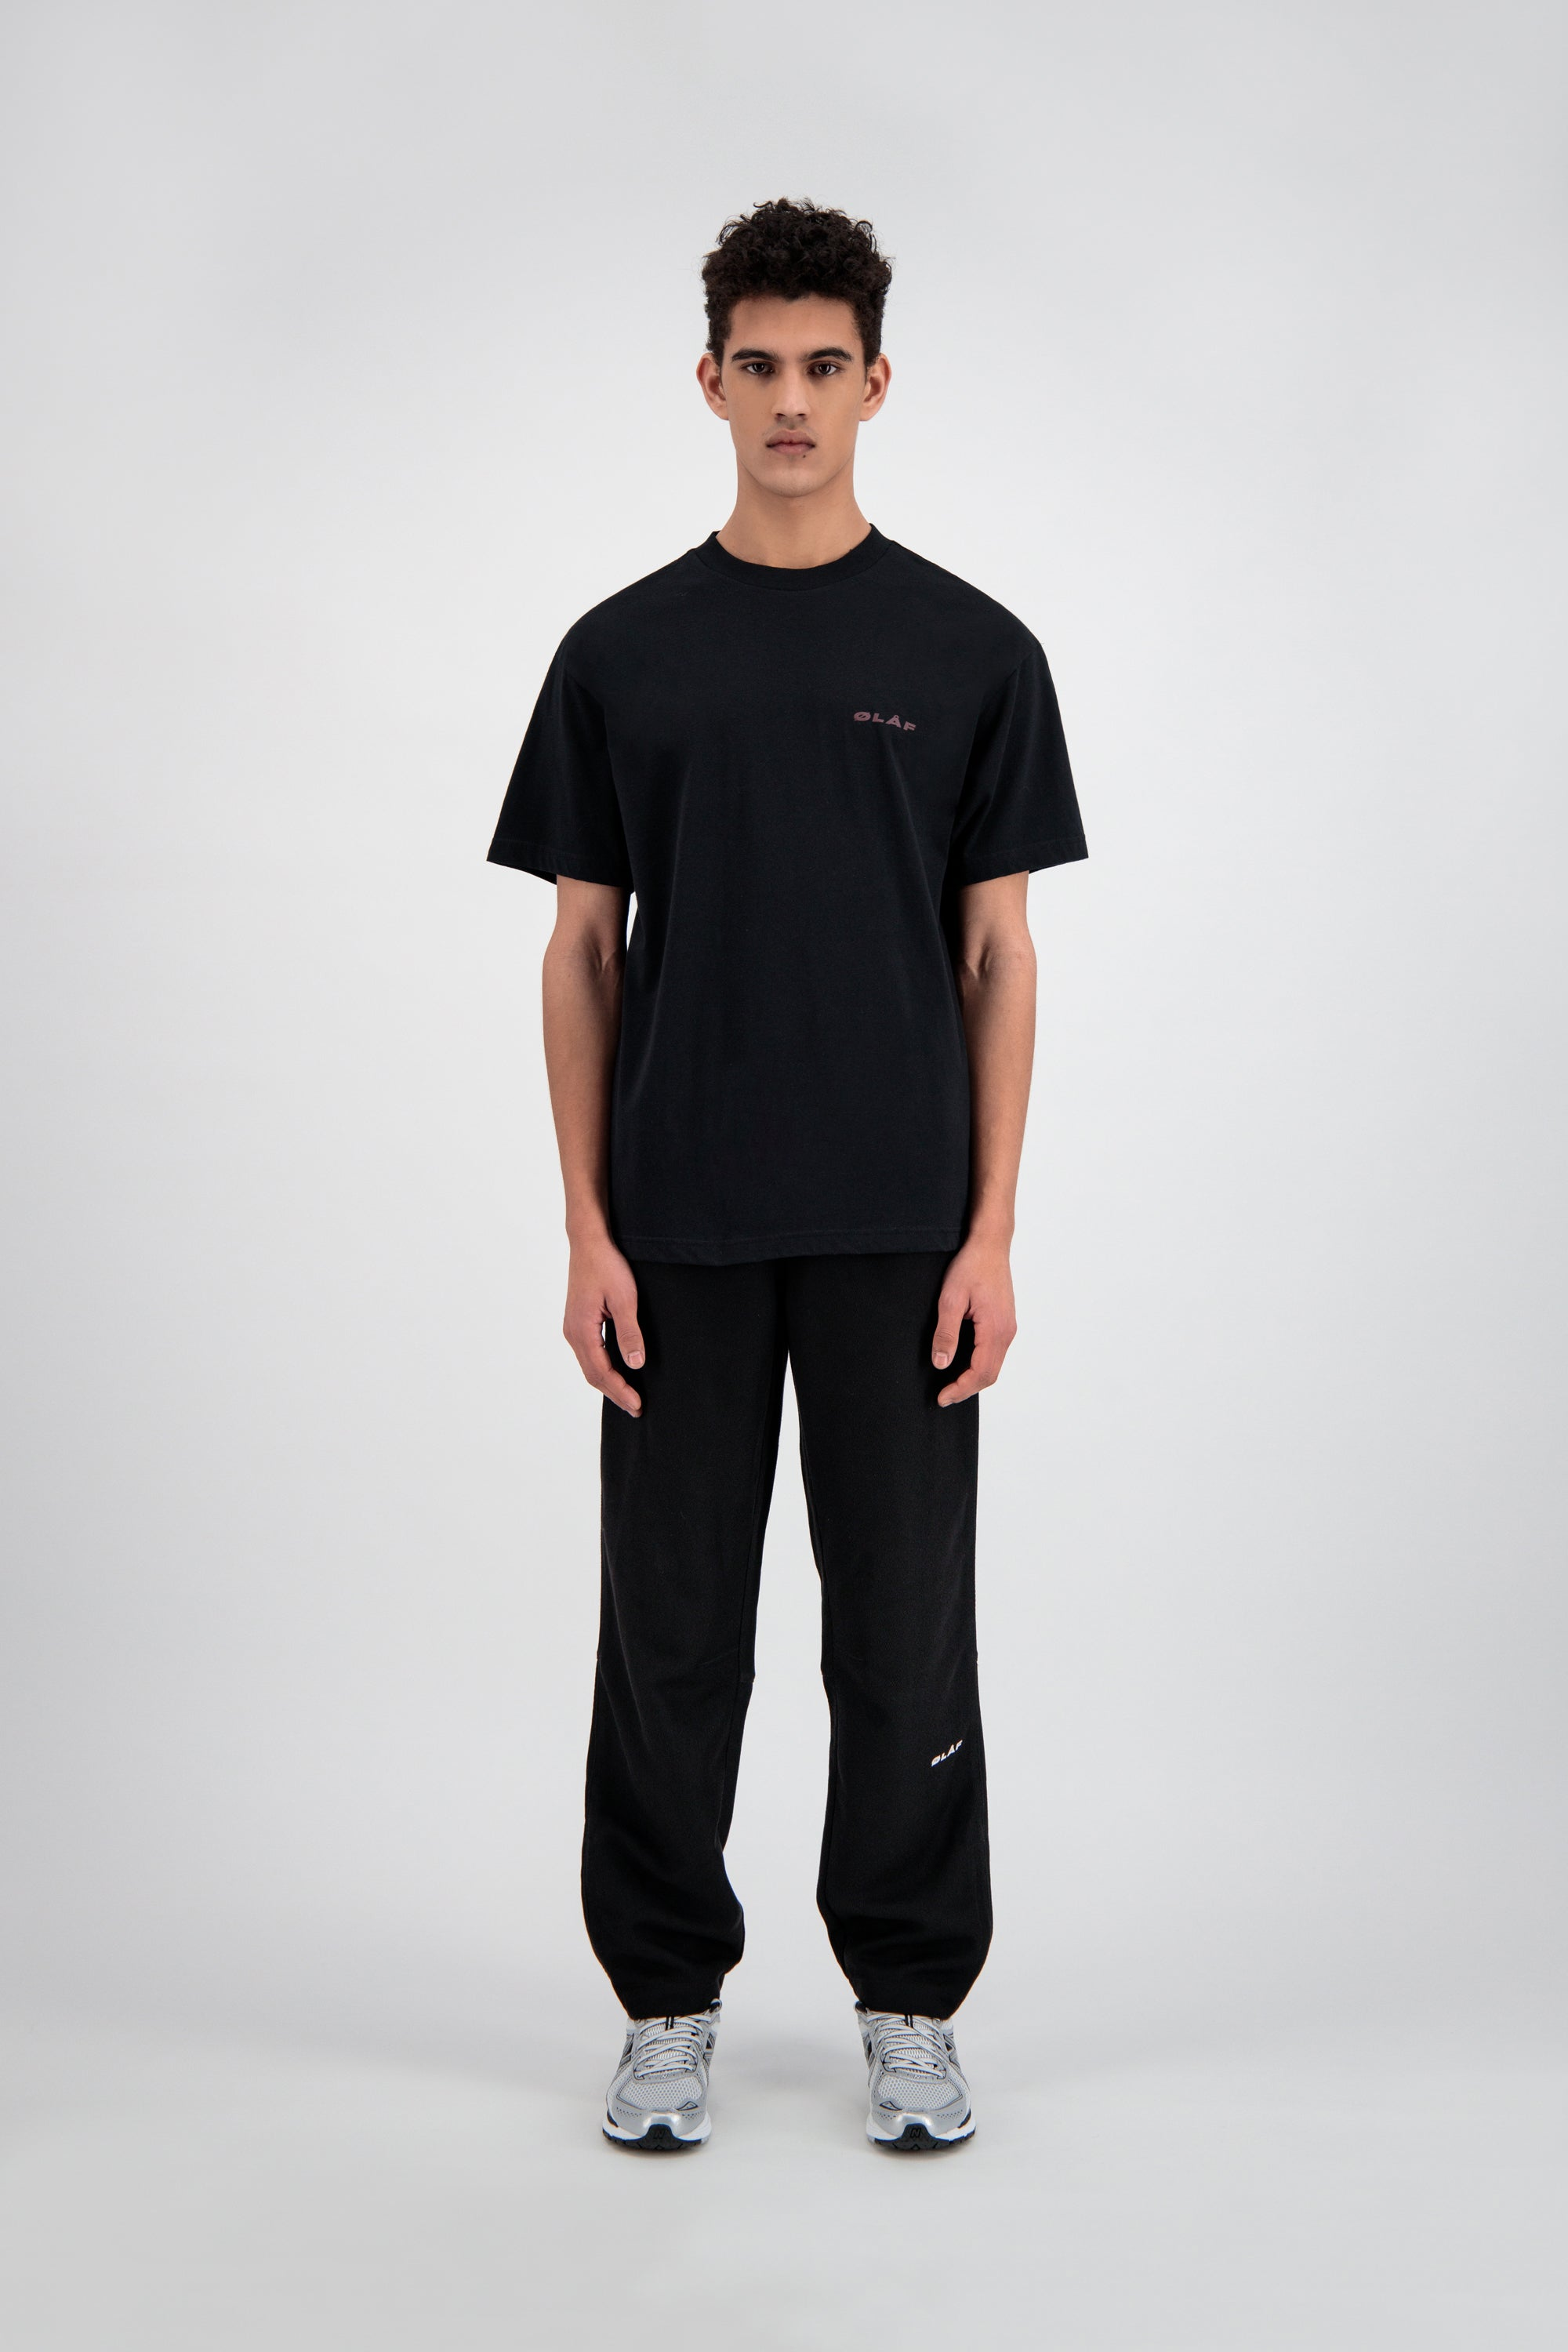 ØLÅF Uniform Tee <br>Black